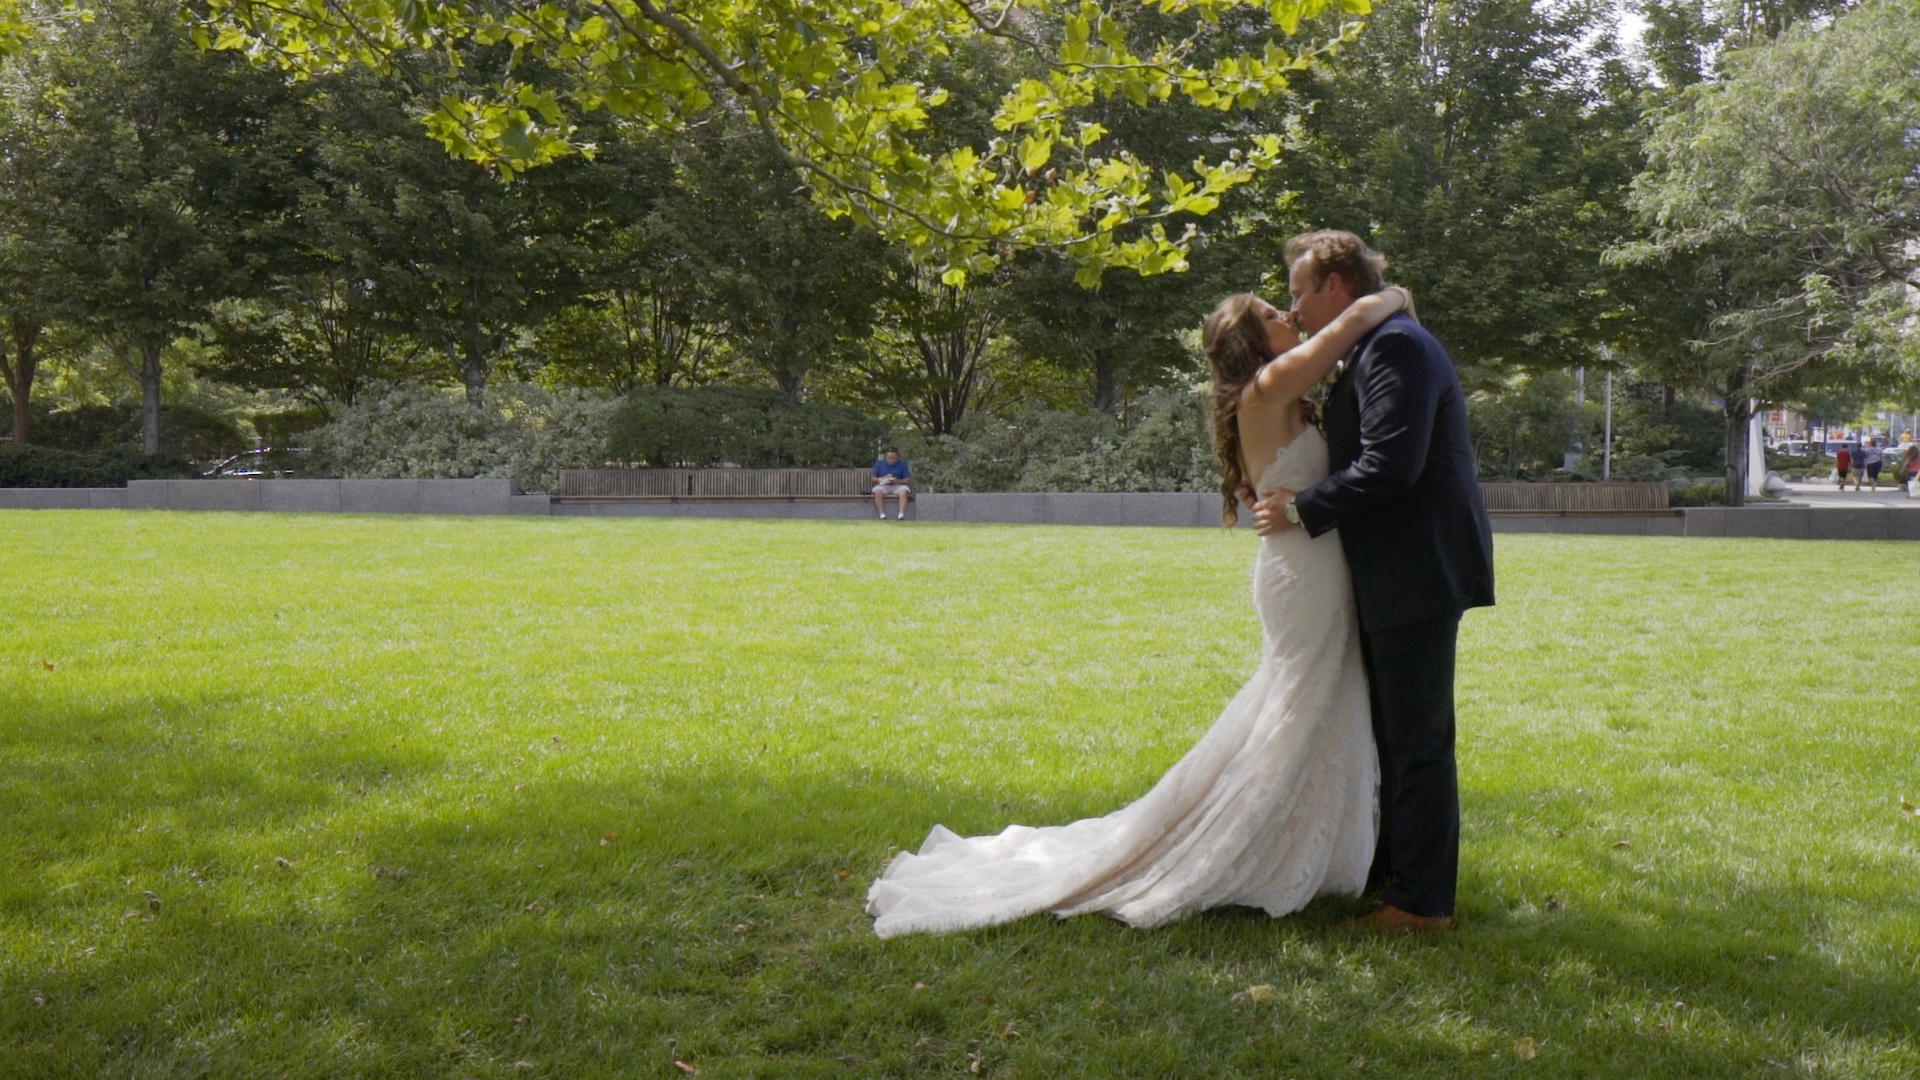 Real Wedding Video From Autumn Crest Farm In Franklin Tennessee